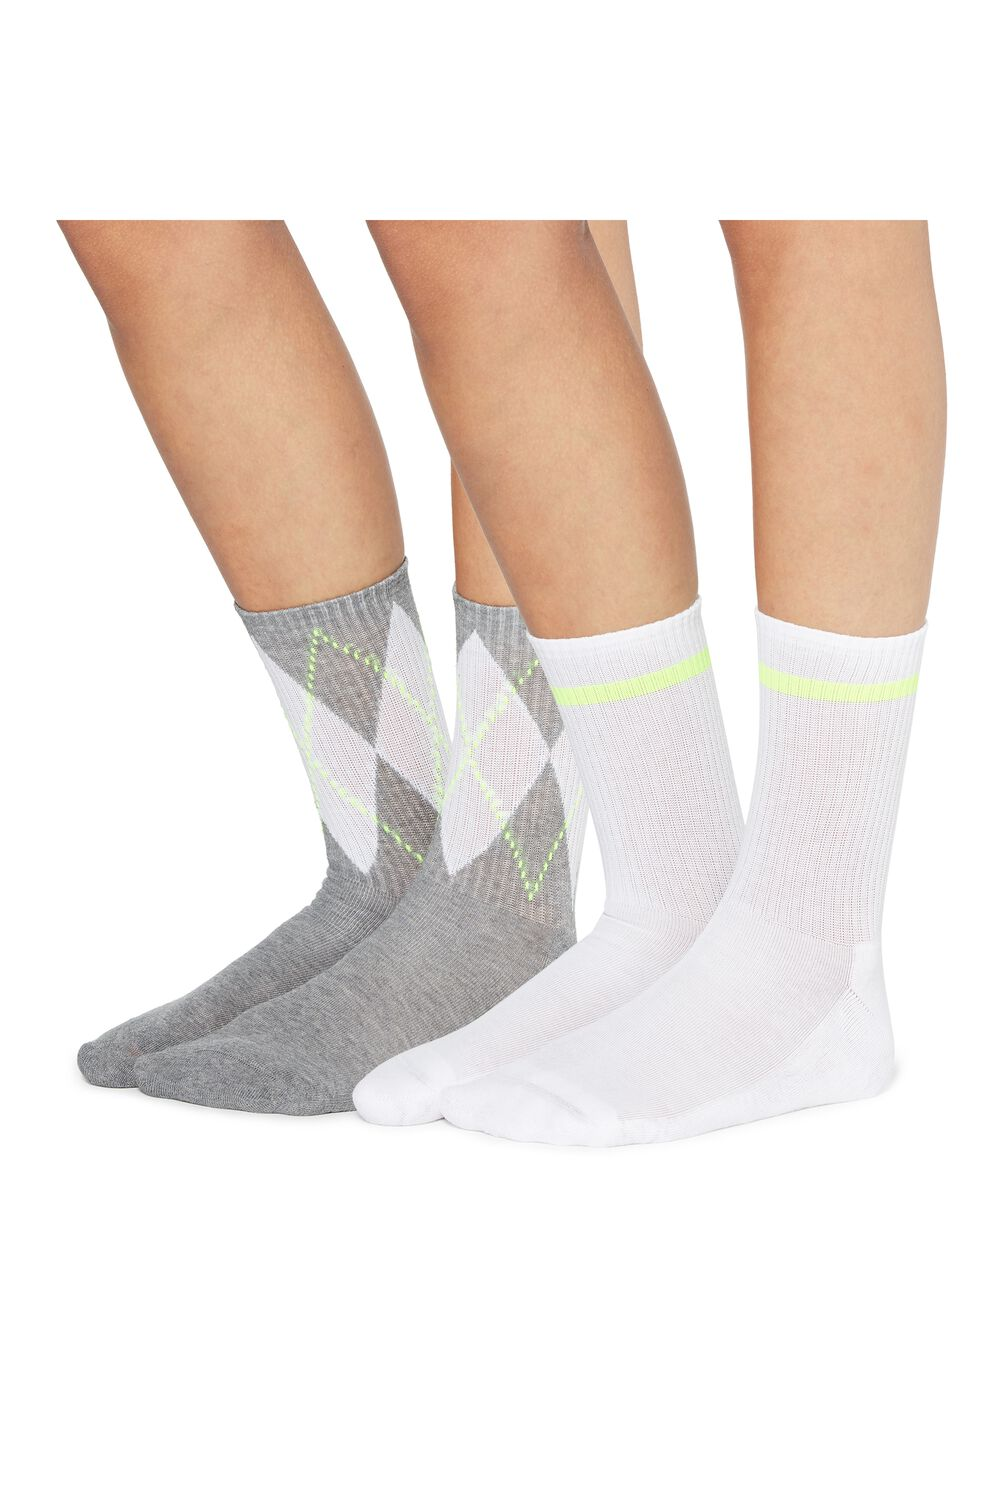 2 X 3/4 length patterned sport socks